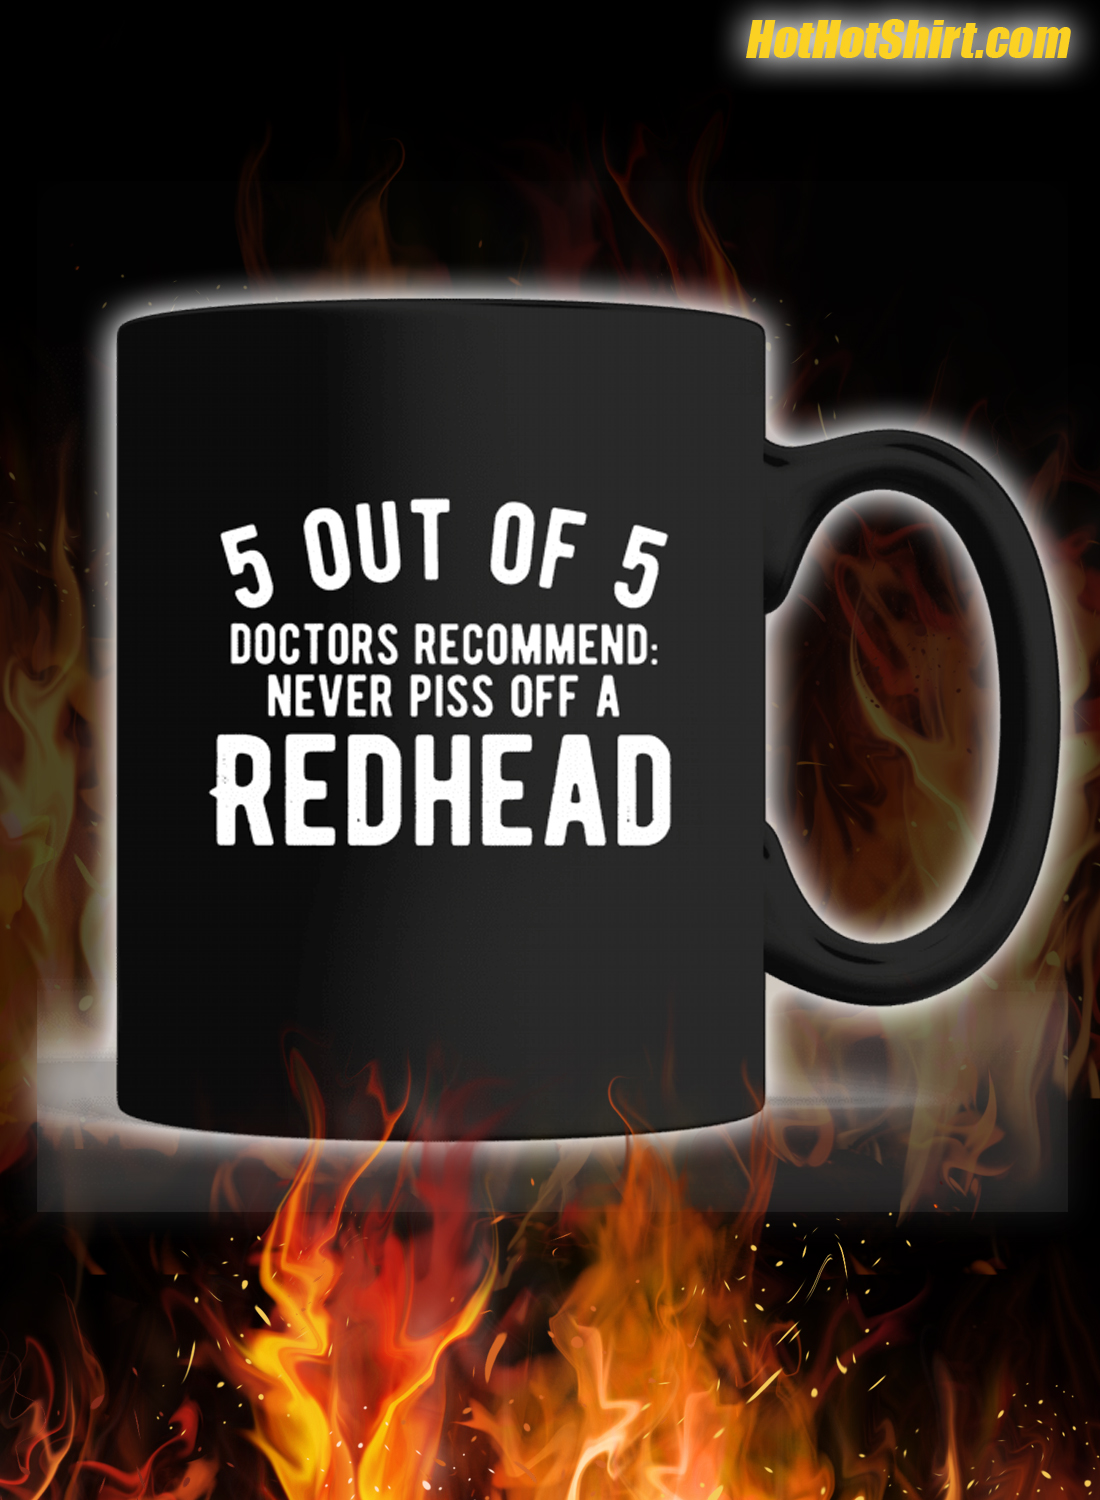 5 Out Of 5 Doctors Recommend Never Piss Off A Redhead Mug